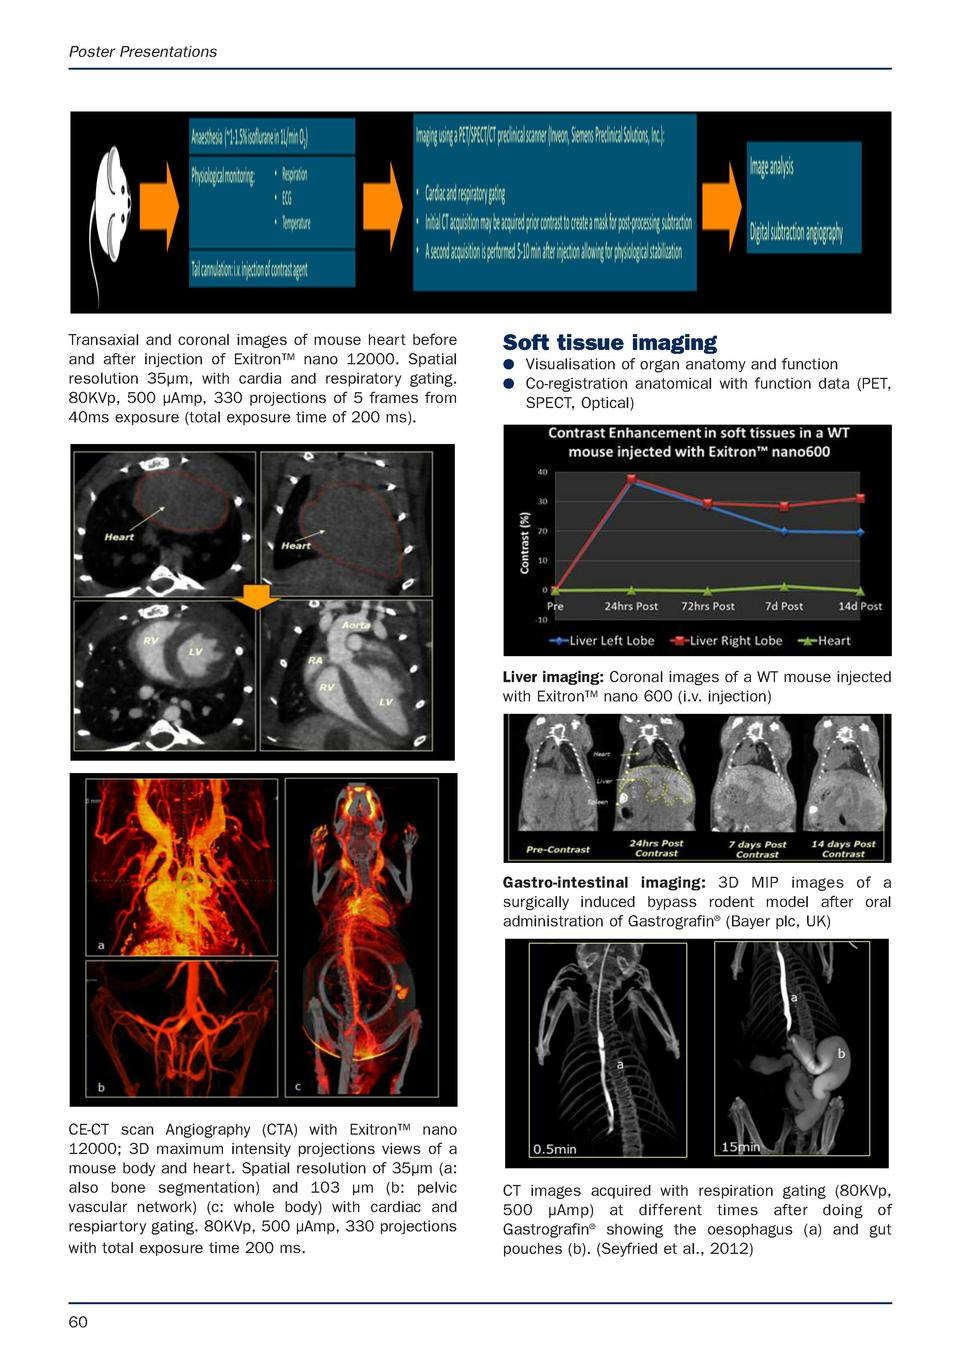 Poster Presentations  Transaxial and coronal images of mouse heart before and after injection of Exitron    nano 12000. Sp...